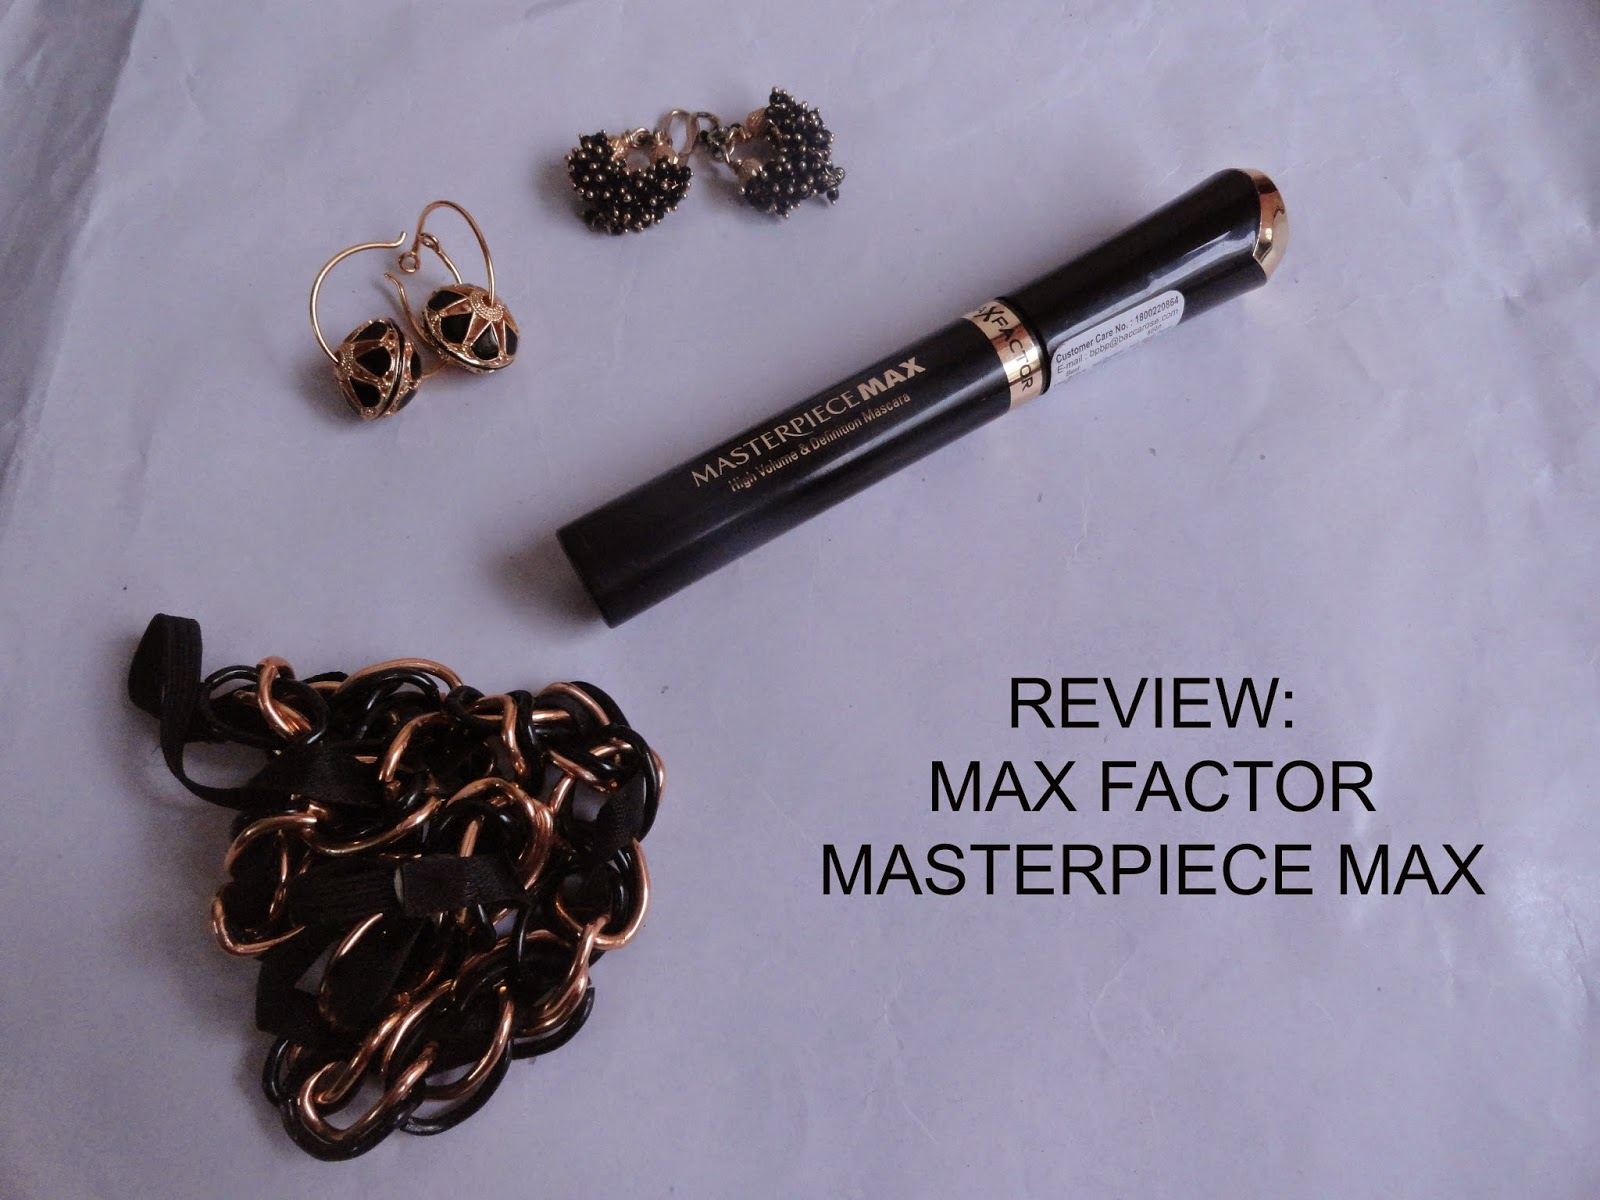 REVIEW: Max Factor MasterpieceMax mascara. image